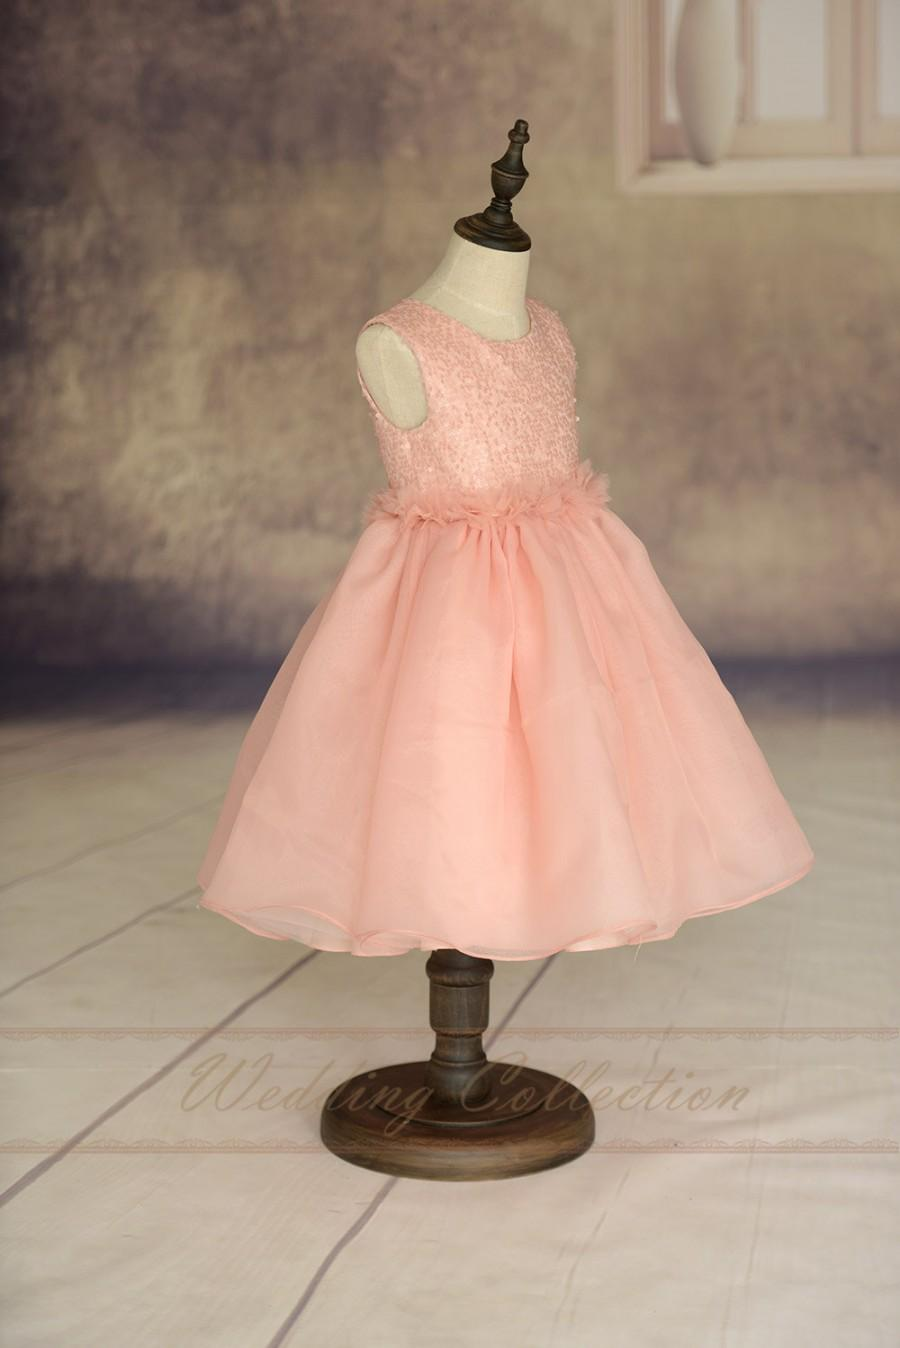 Wedding - Blush Pink Flower Girl Dress Handmade Flowers Waistband Tulle Skirt